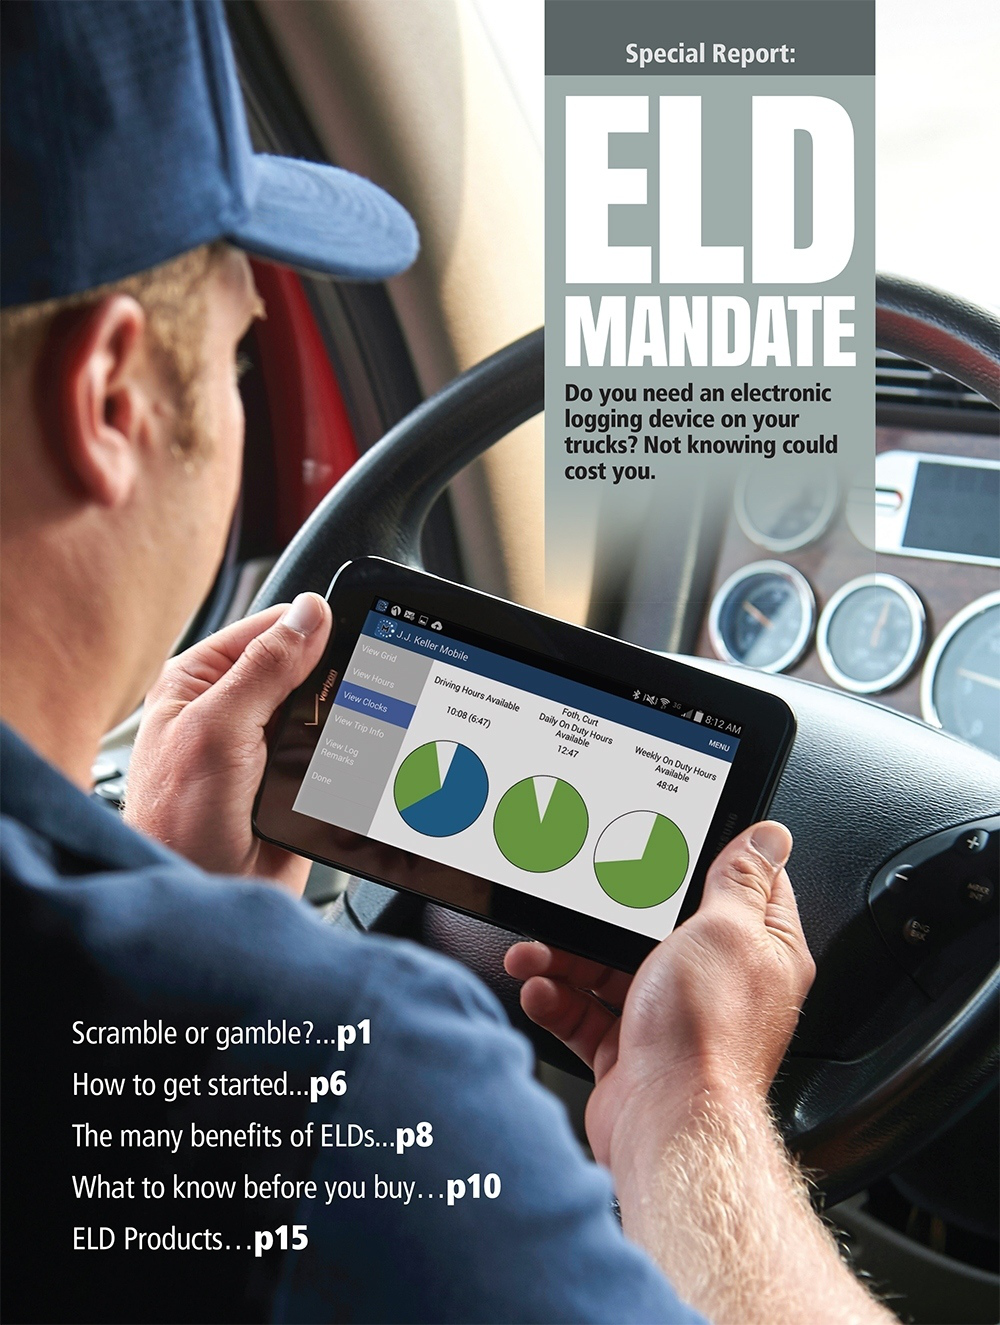 Electronic Logging Devices: What to know before you buy